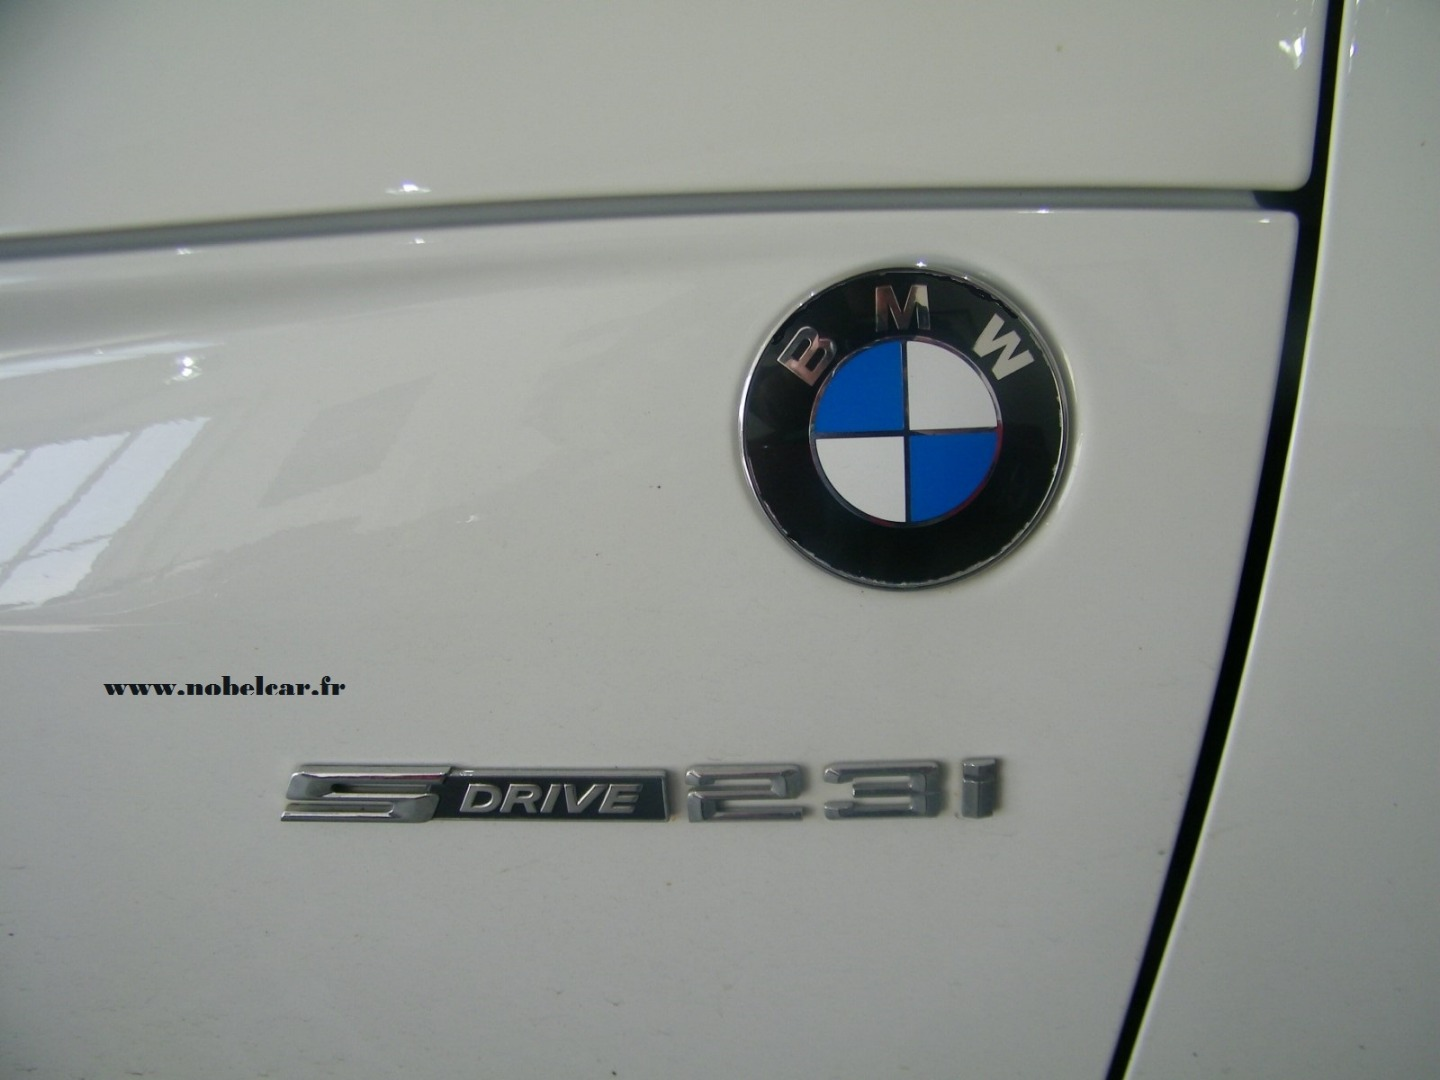 BMW Z4 ROADSTER Sdrive 23 i 55000 Kms du 07/09/2010 D'OCCASION Nobel Car GIRONDE 33